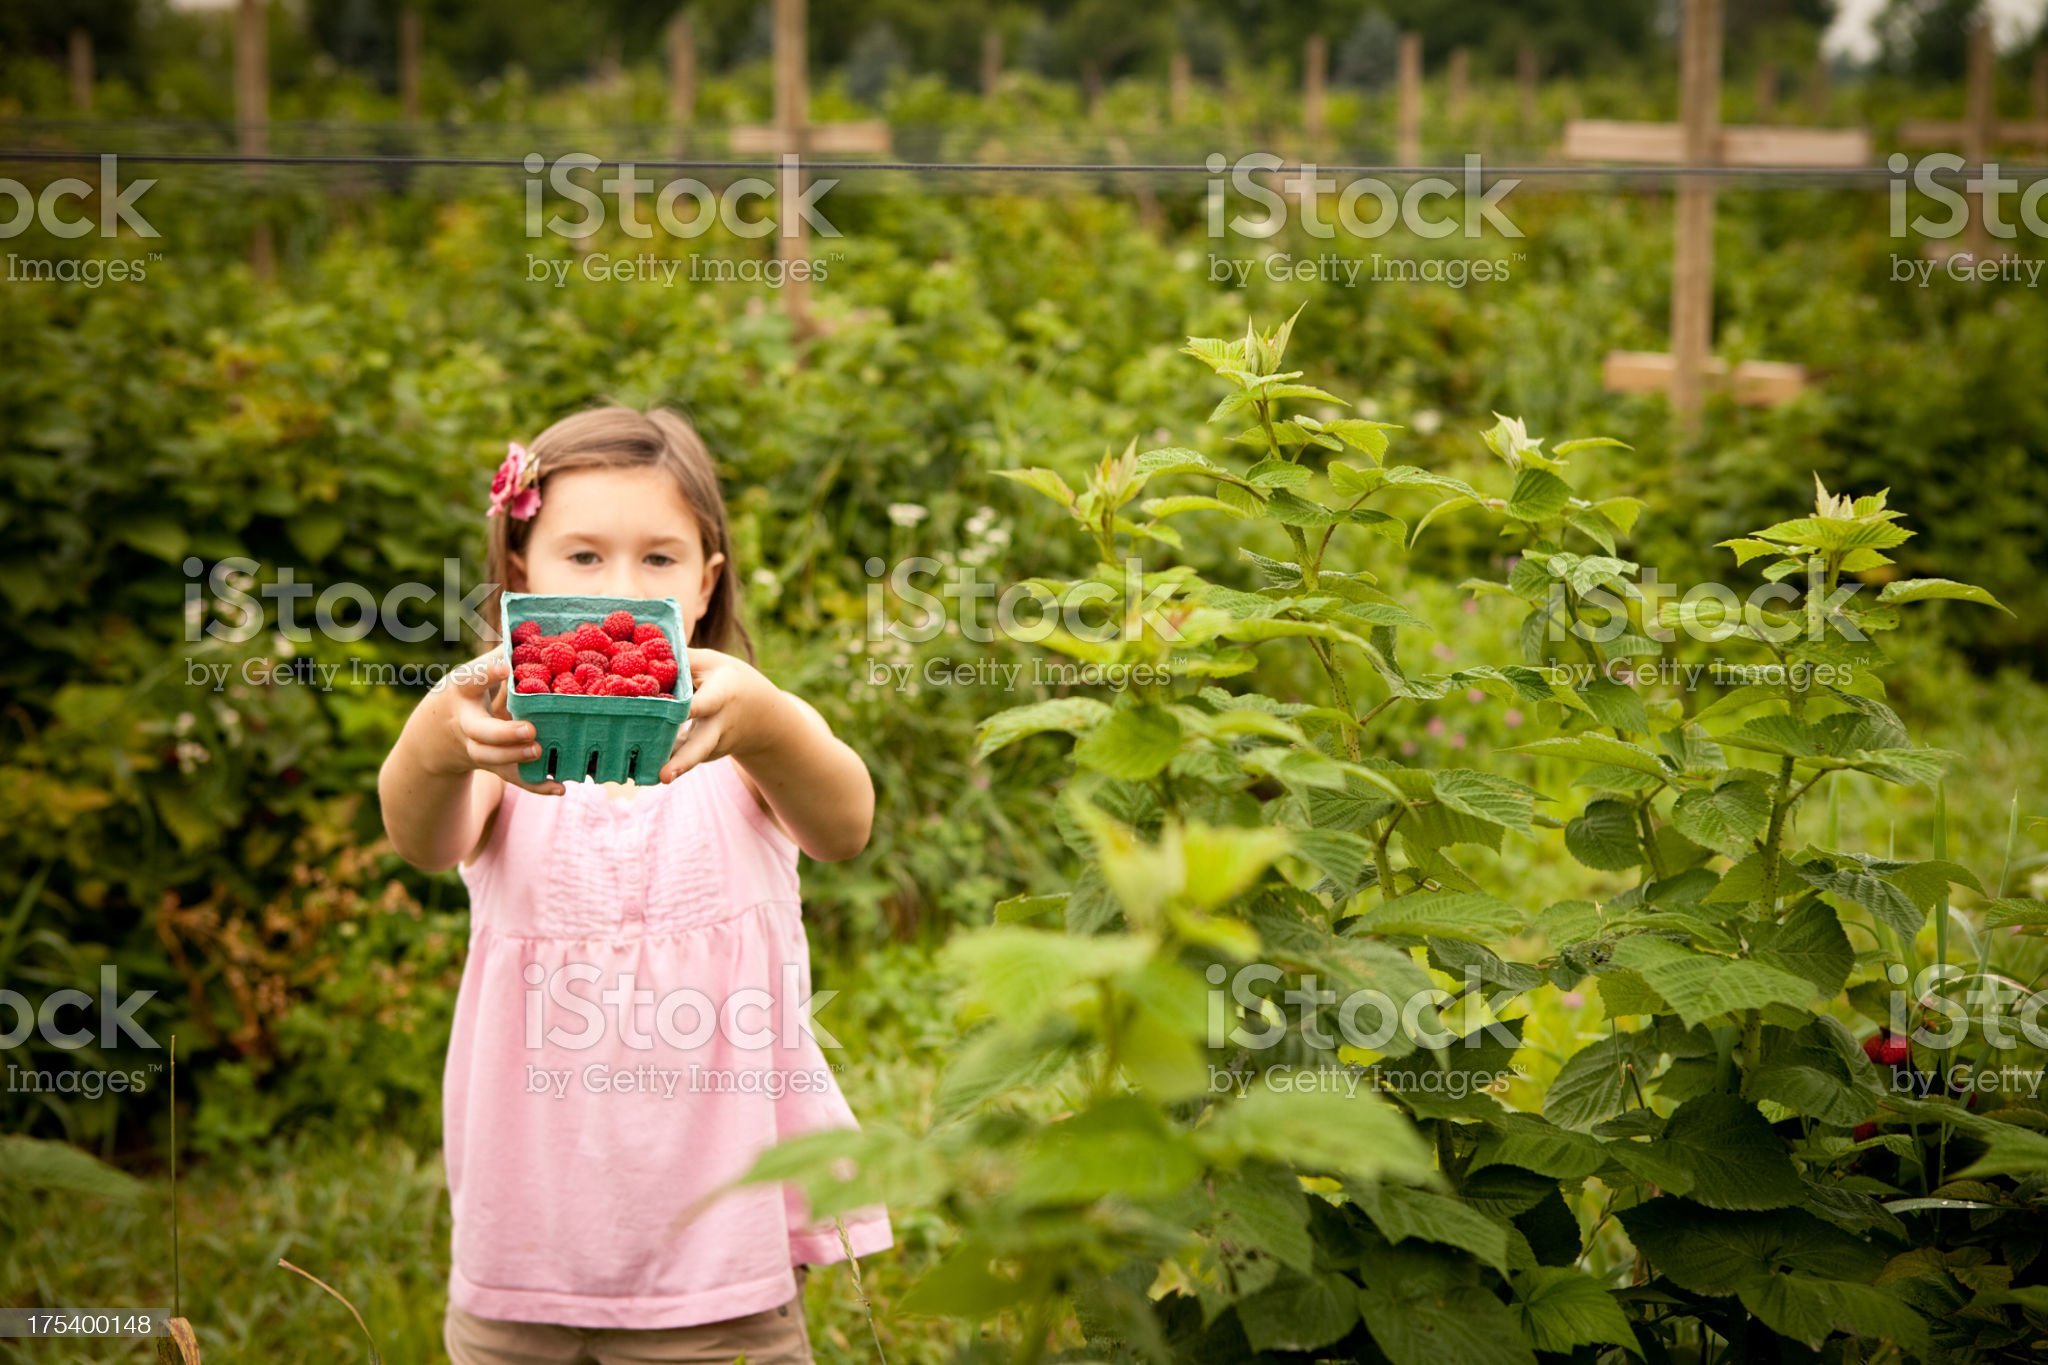 Little Girl Holding Up Carton of Raspberries She Picked royalty-free stock photo